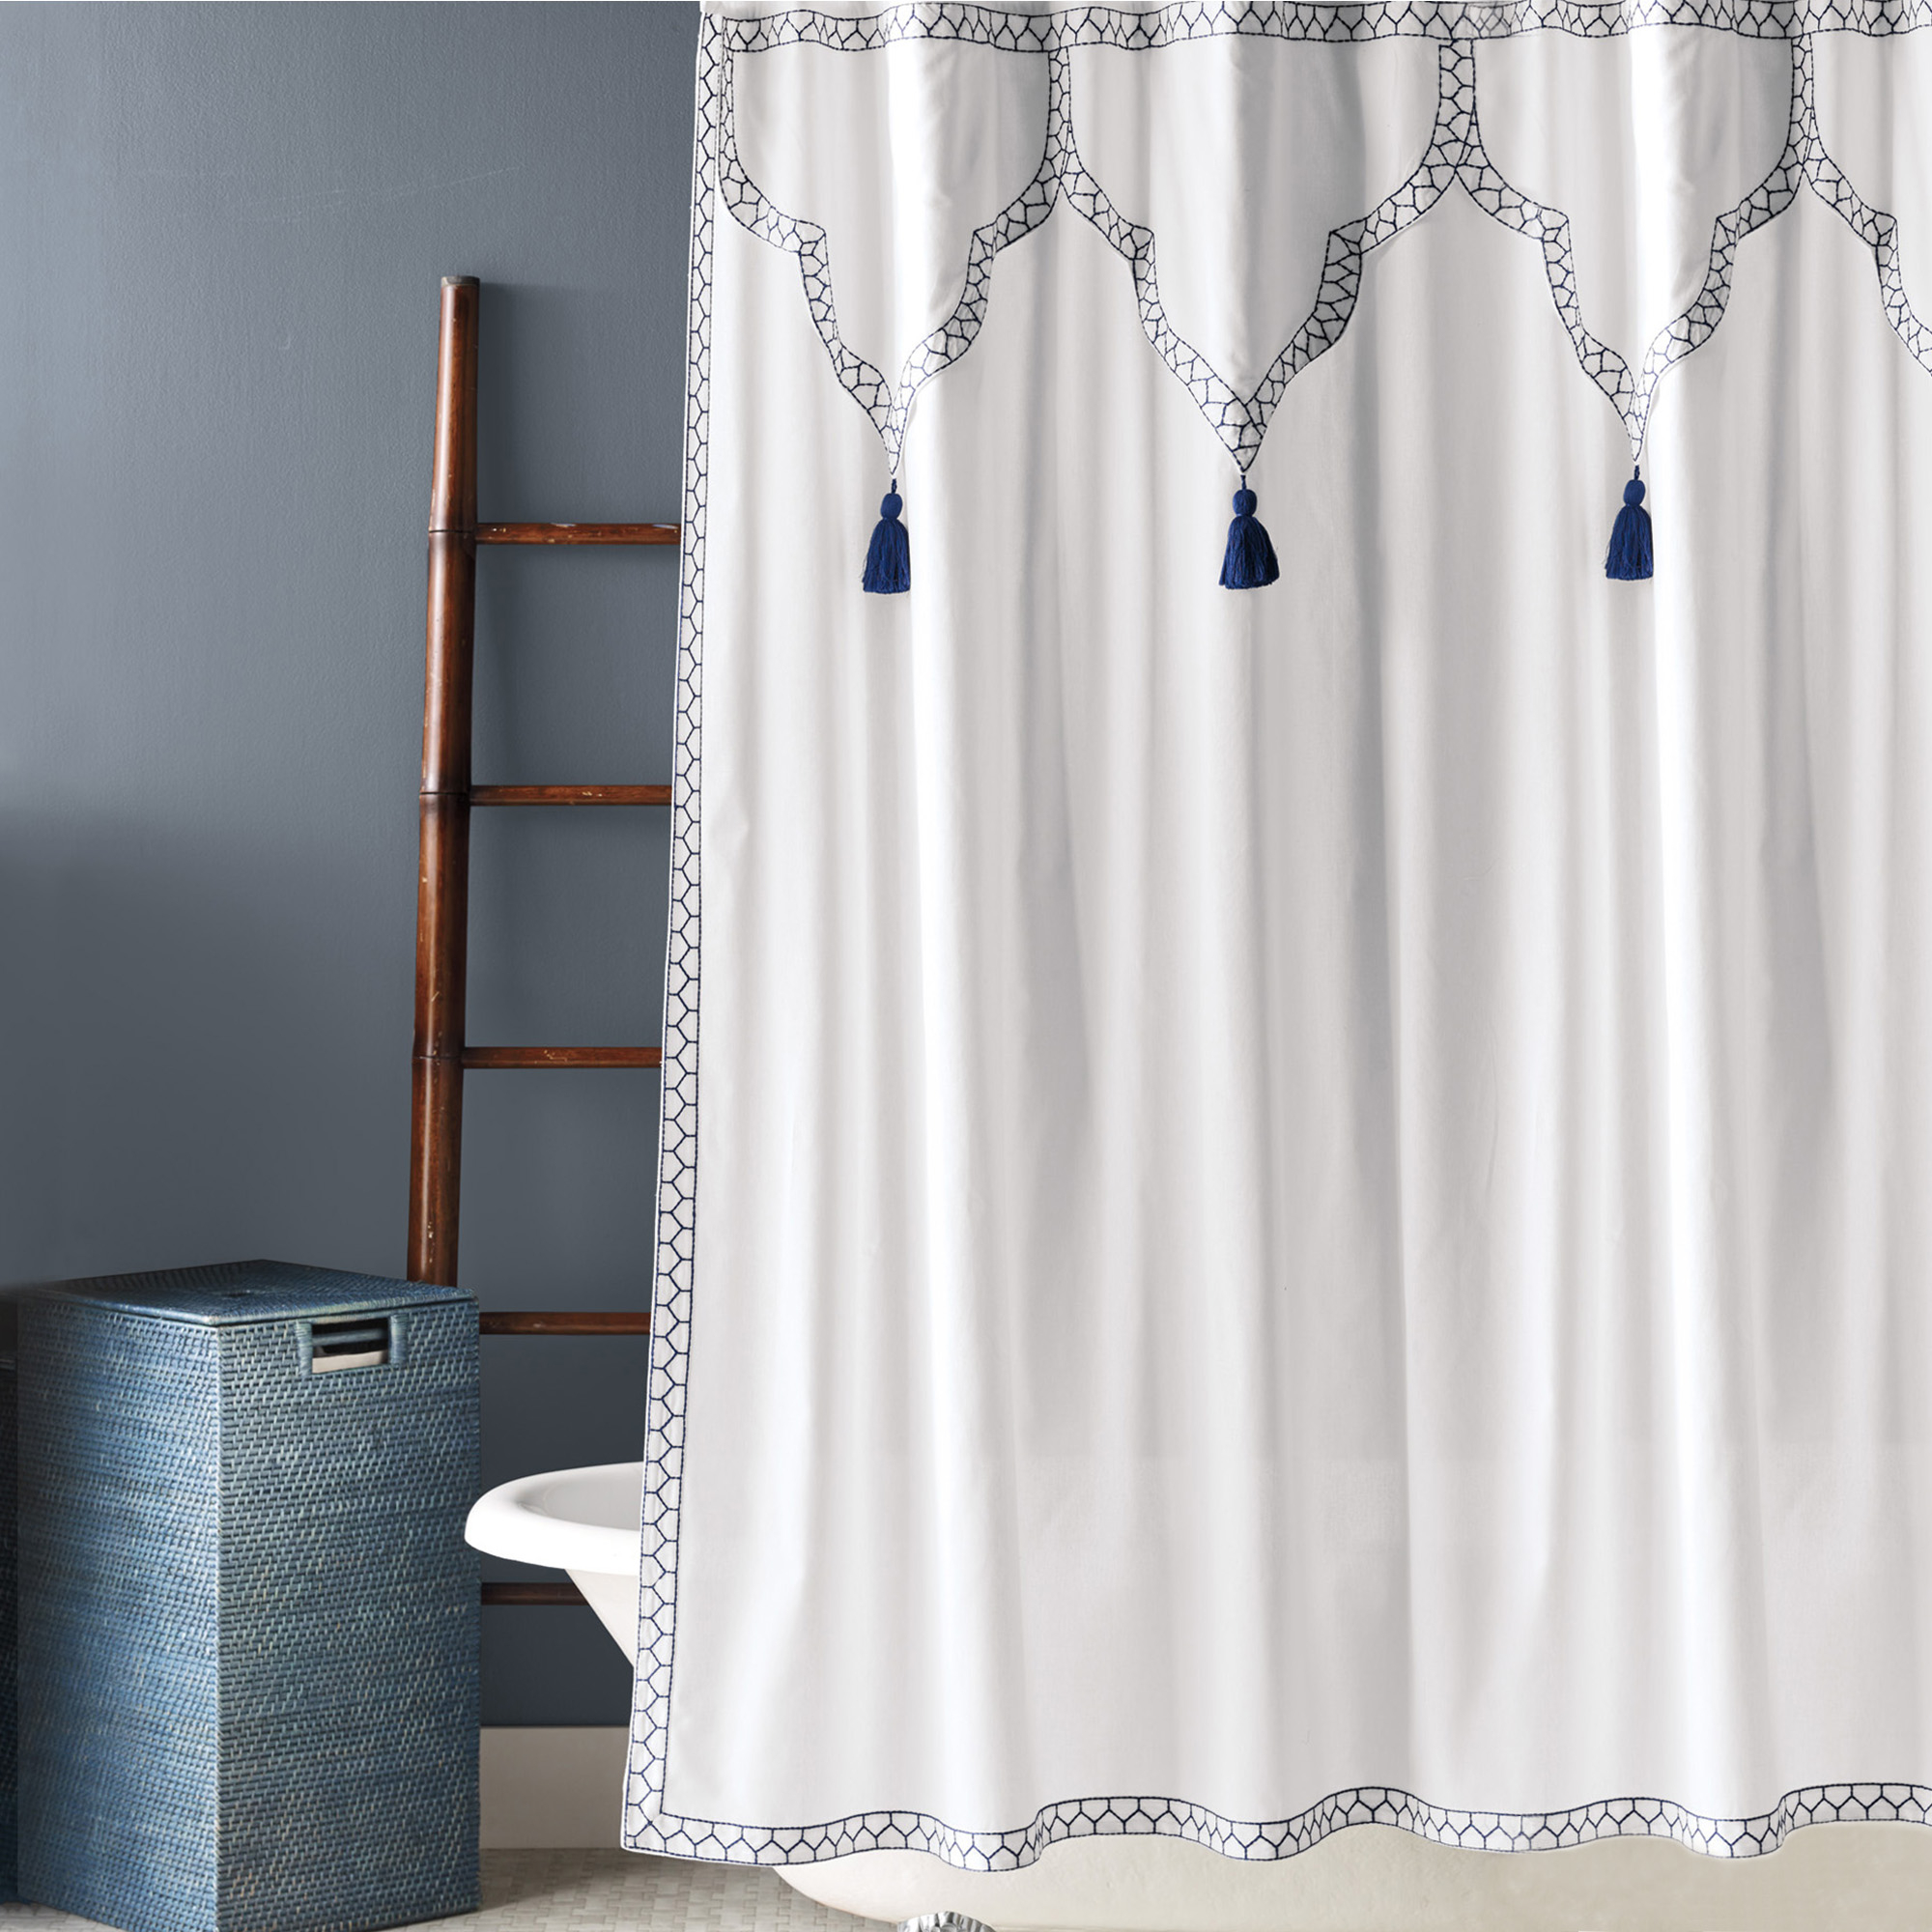 Rabat Shower Curtain